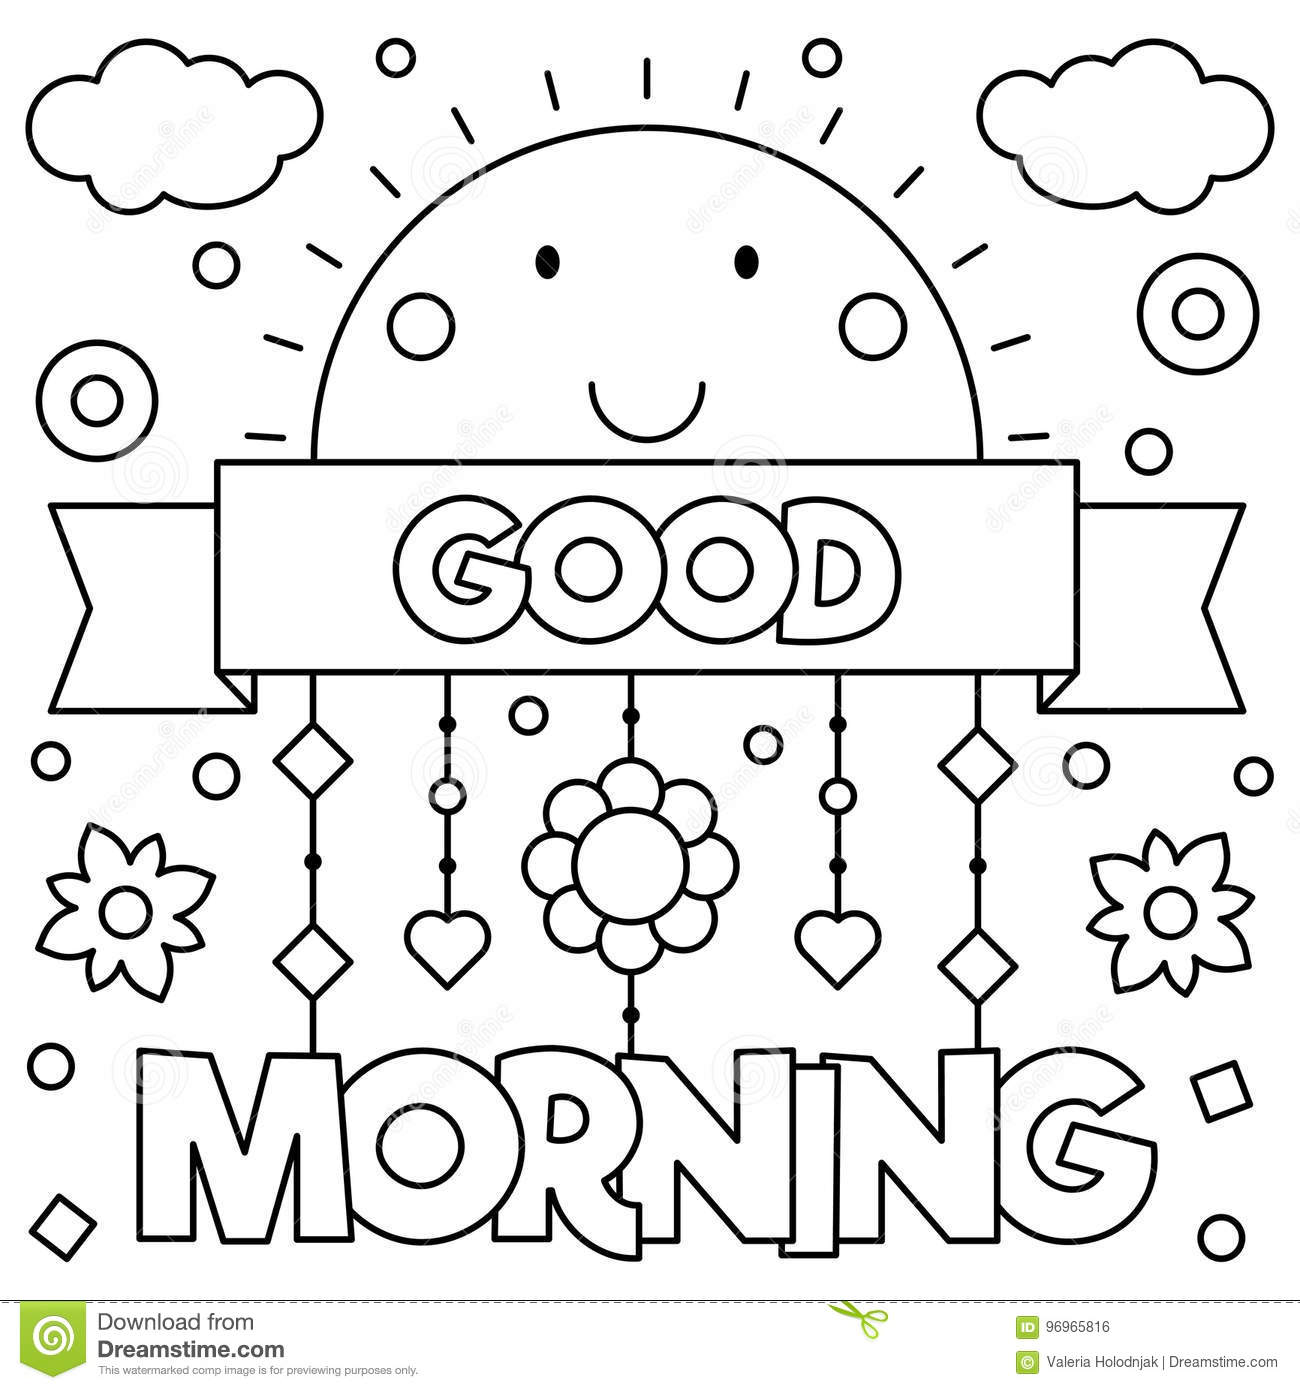 Good Morning Afternoon Coloring Pages